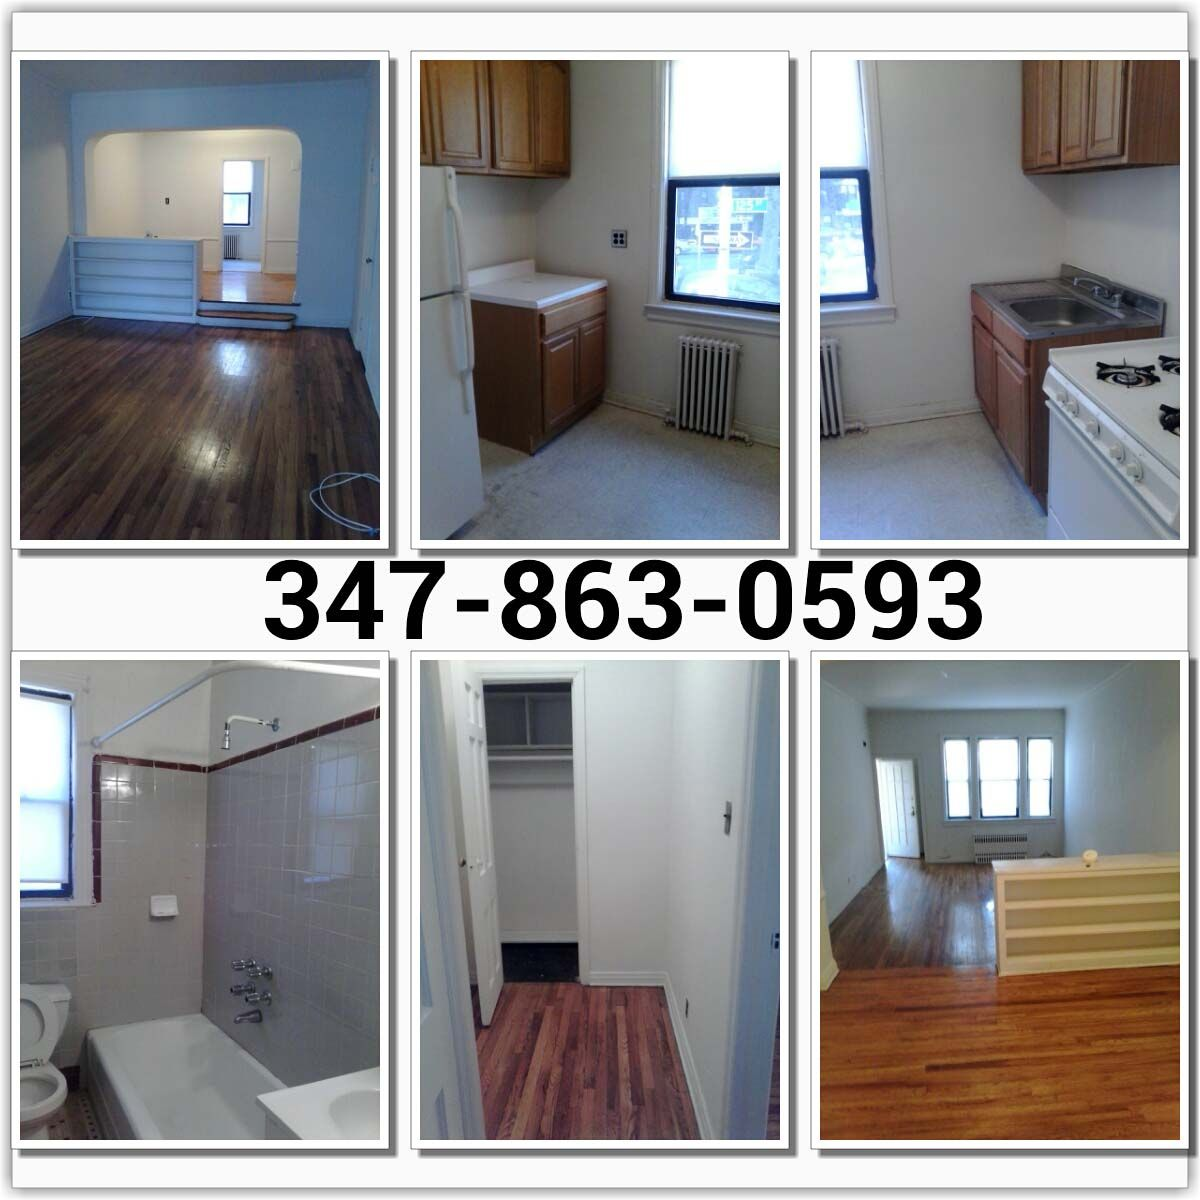 $1100 HUGE STUDIO APARTMENT FOR RENT IN KEW GARDENS Huge